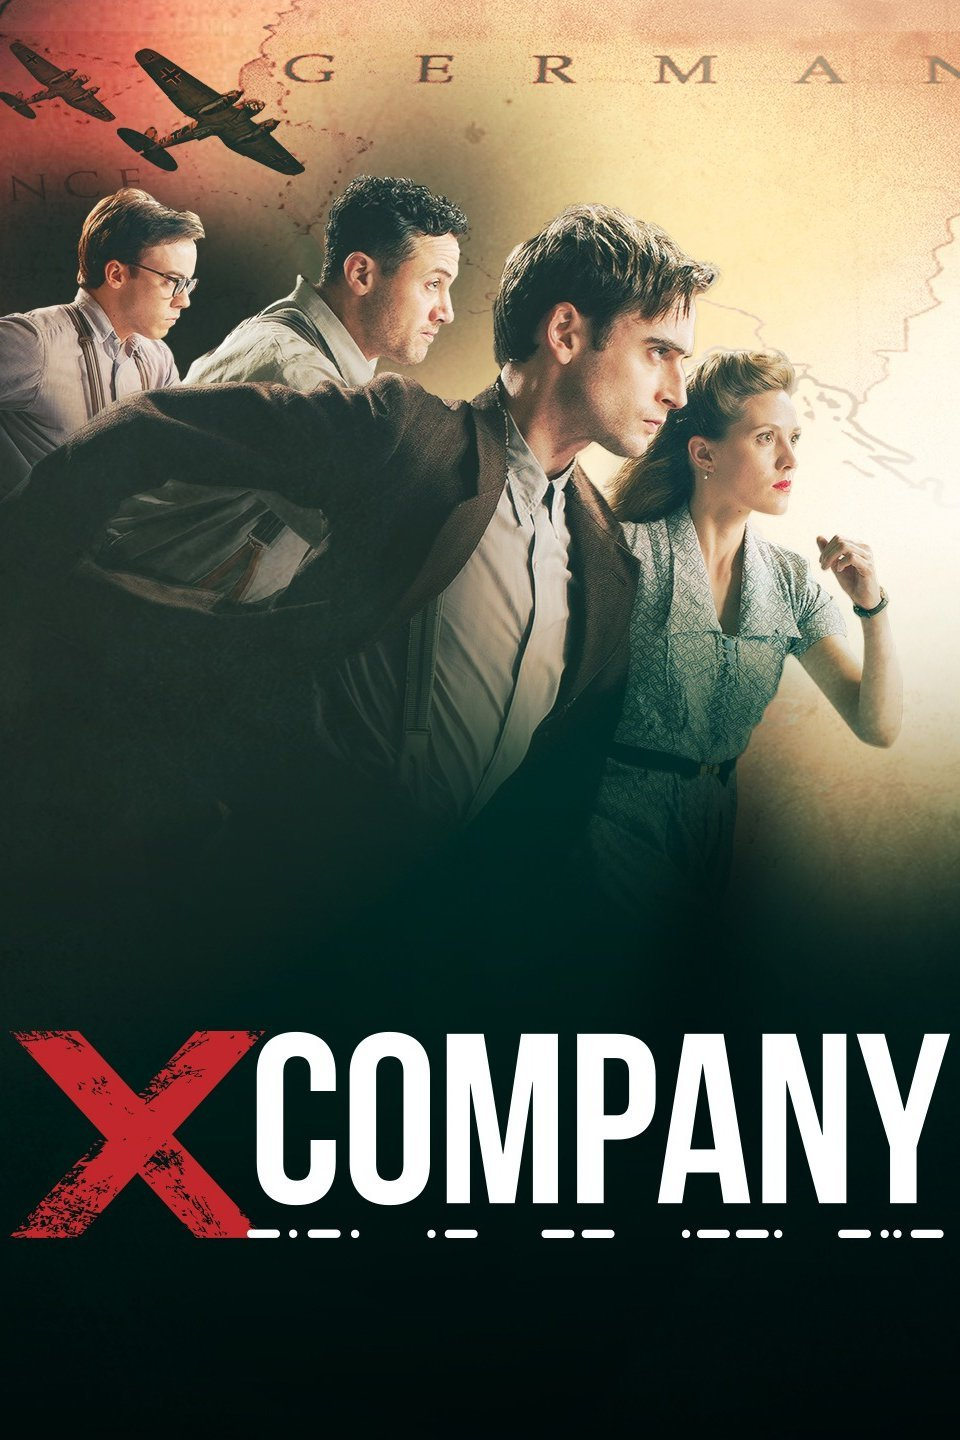 X Company Season 1 Download Complete 480p HDTV